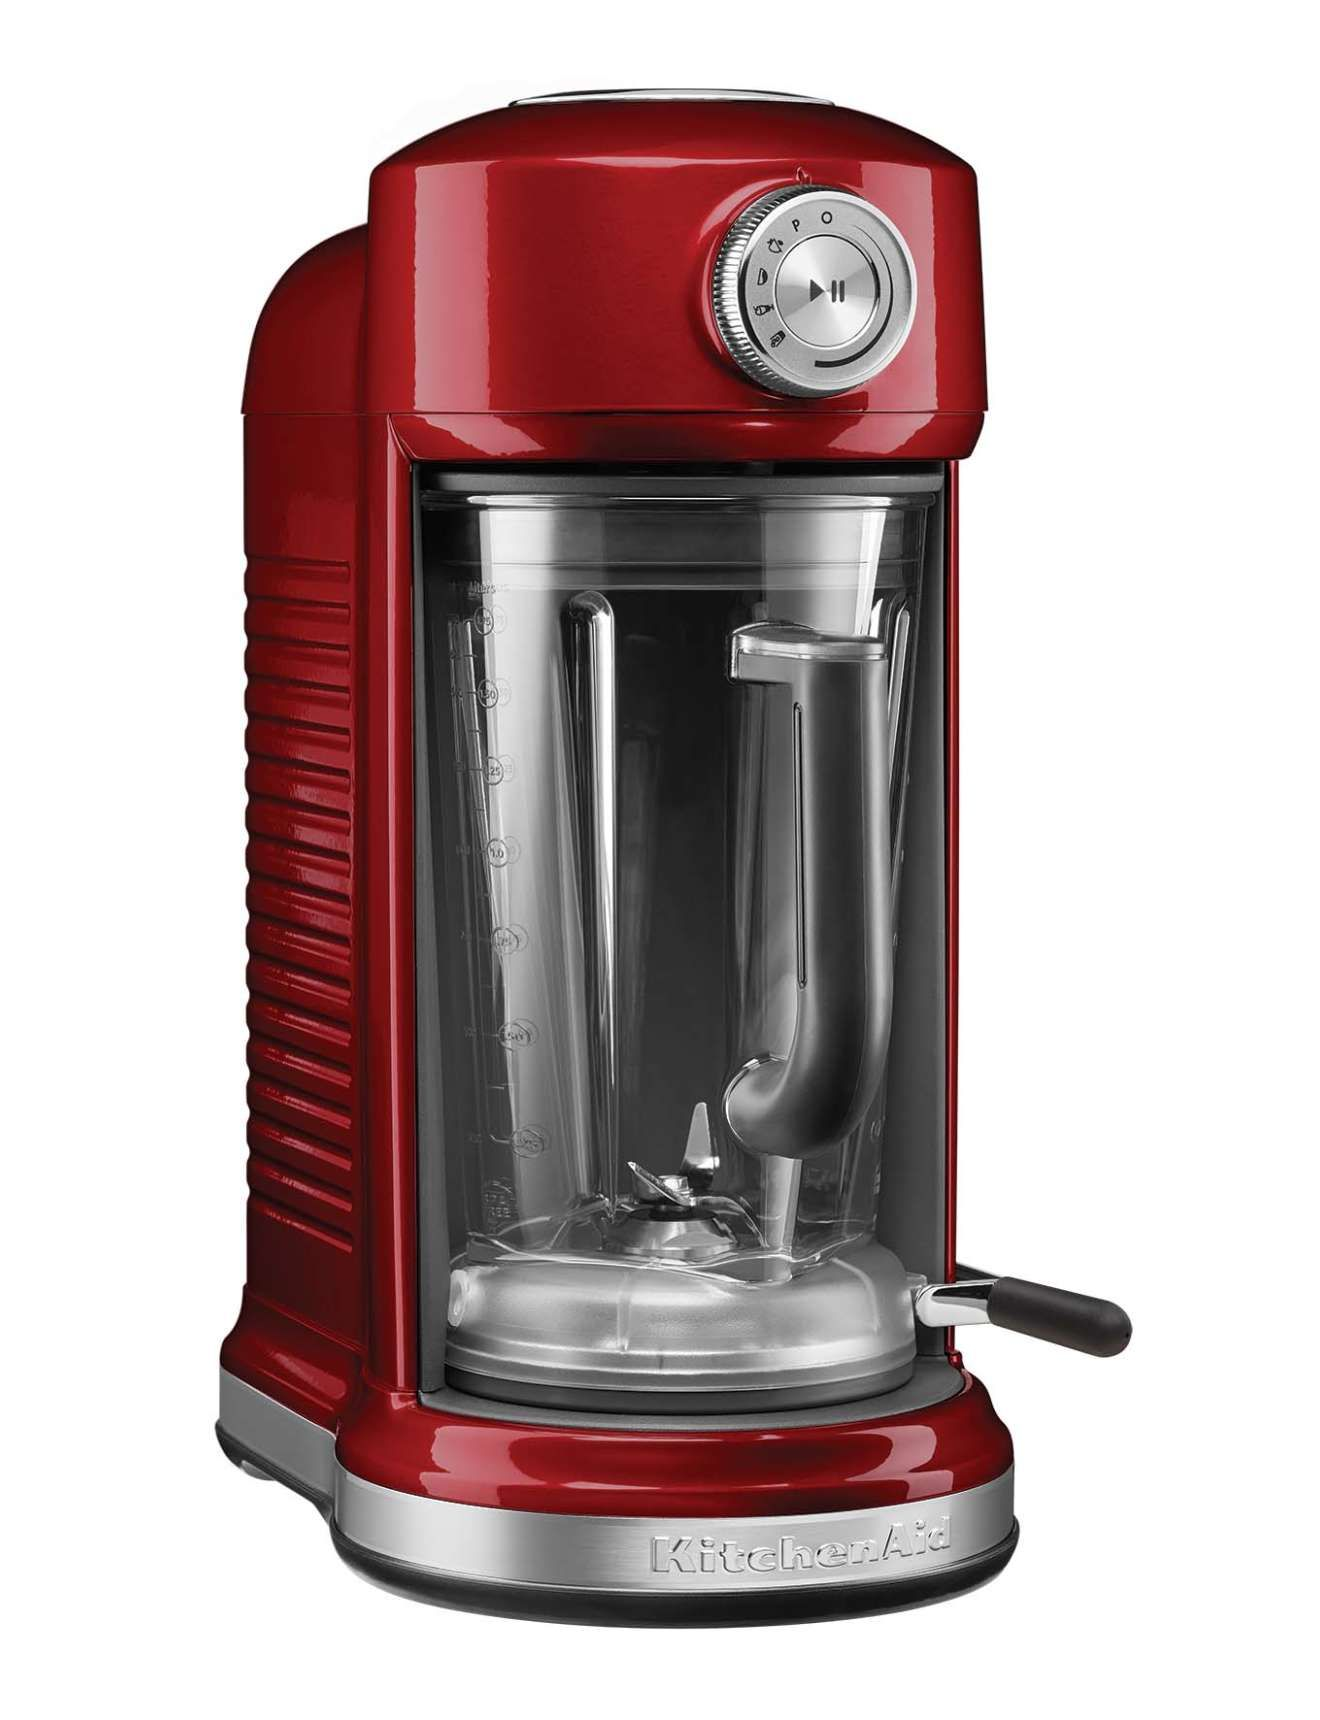 Kitchenaid Küchenmaschine Video Ksb5080 Magnetic Drive Blender Candy Apple David Jones Kitchen